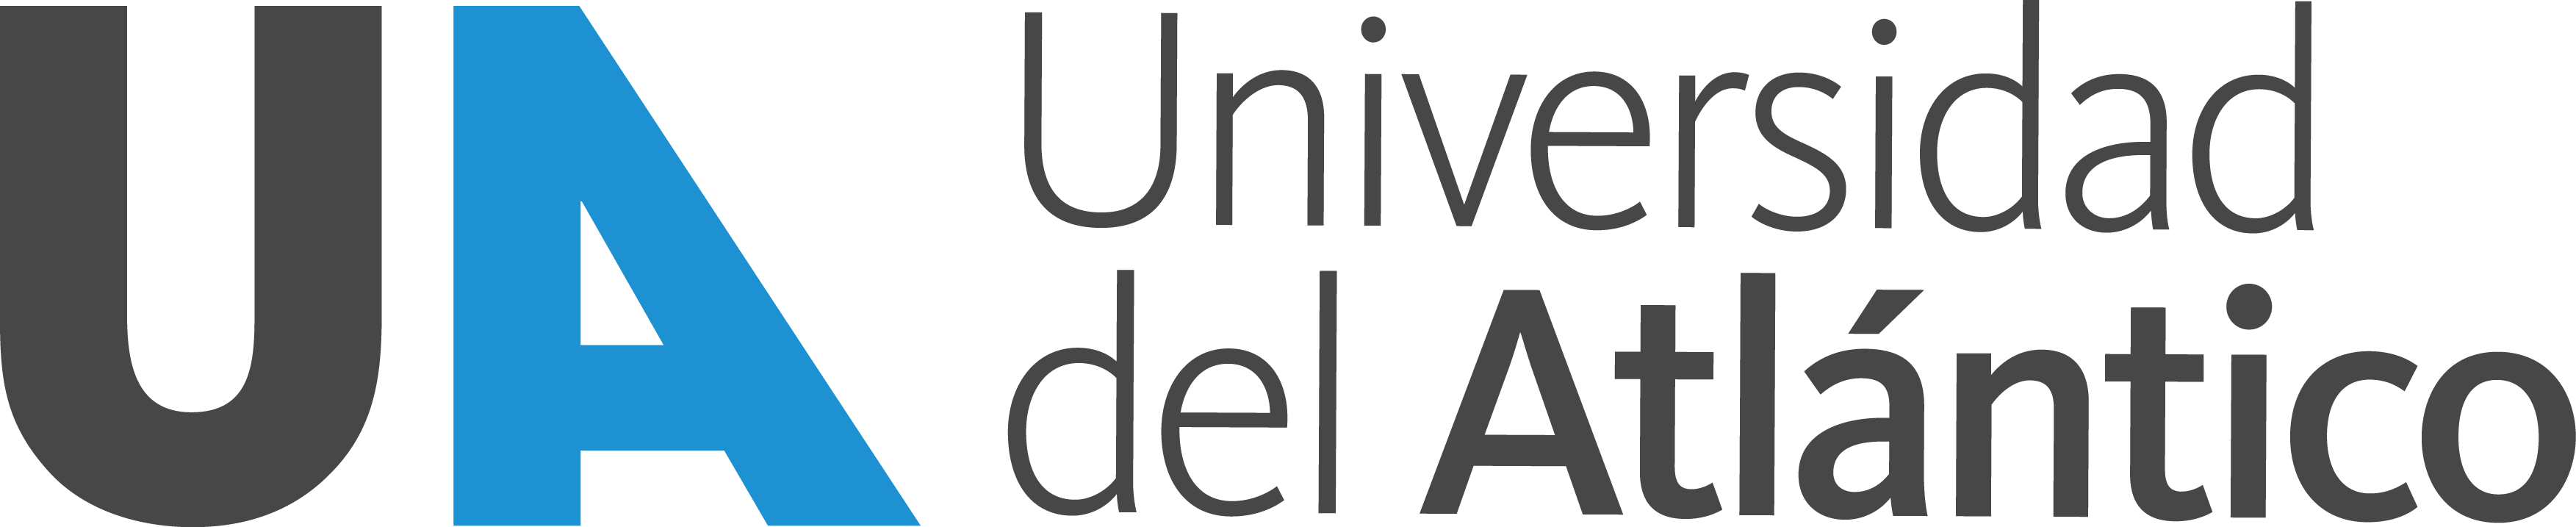 universidad del atlantico